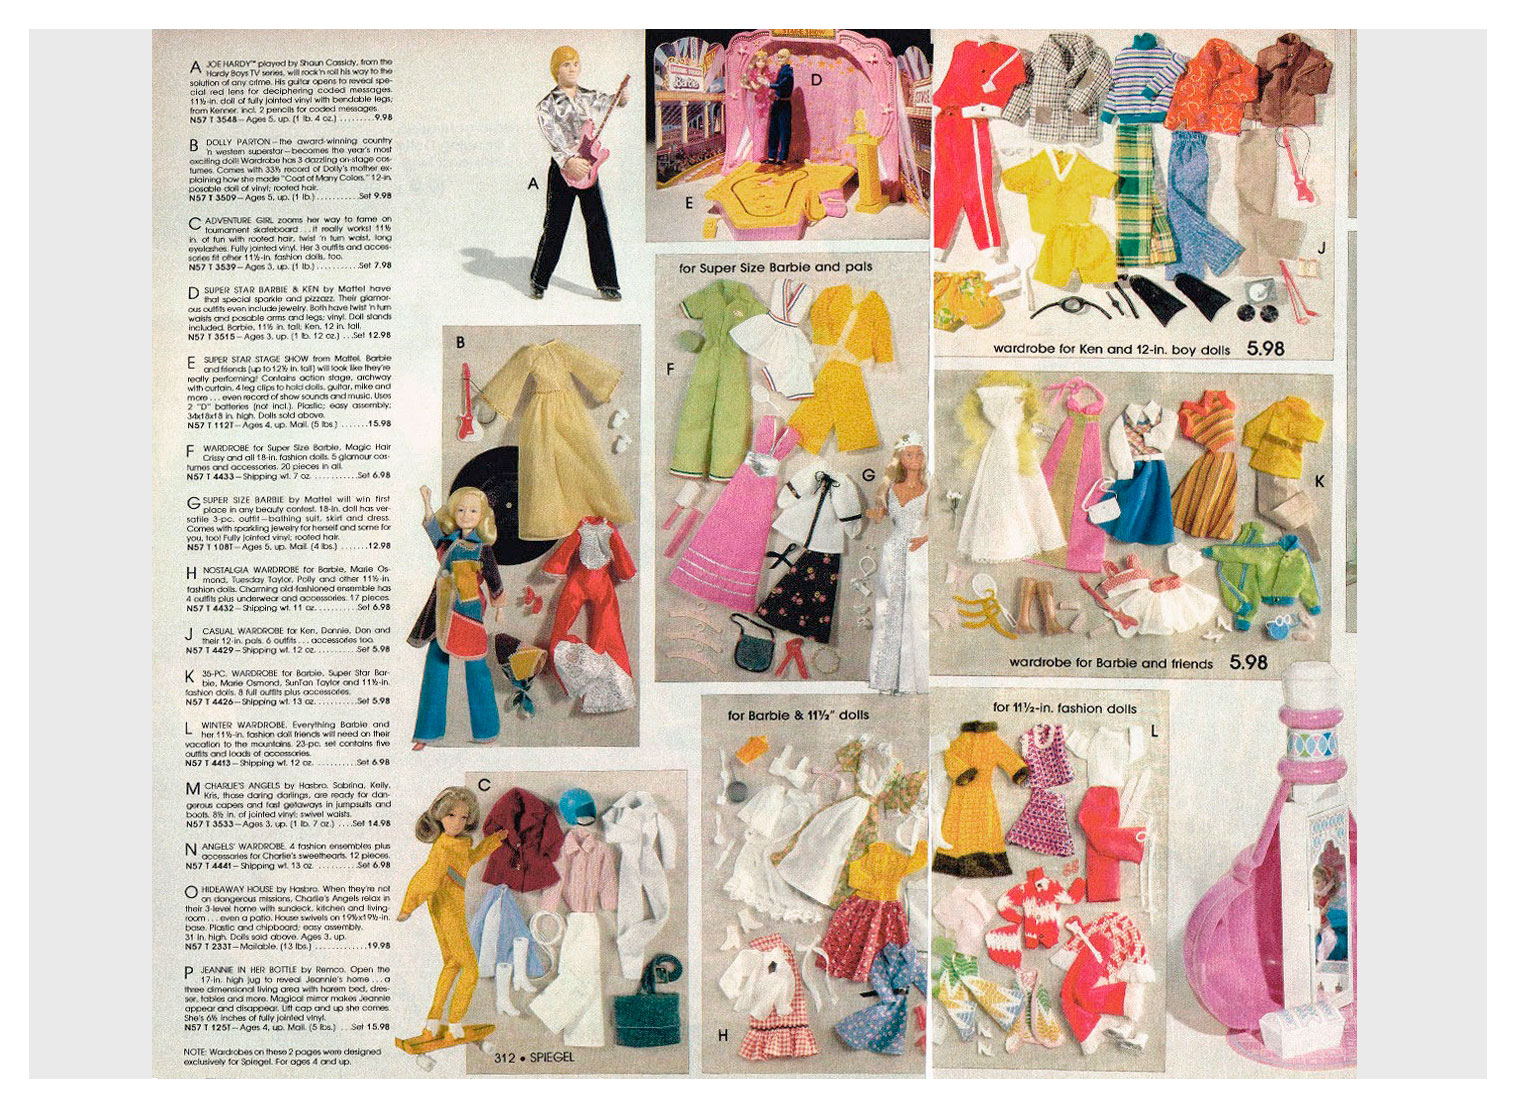 From 1978 Spiegel Christmas catalogue